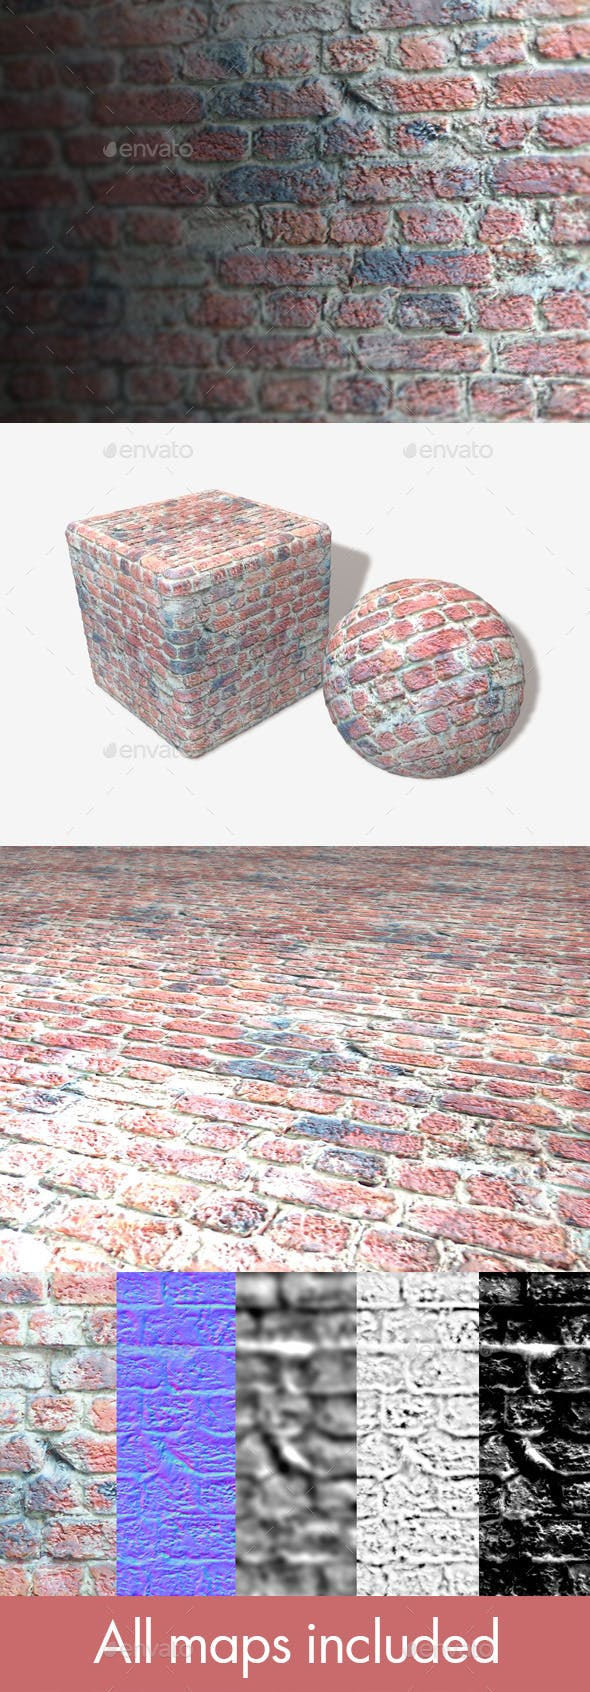 Brick Wall with Messy Cement Seamless Texture - 3DOcean Item for Sale